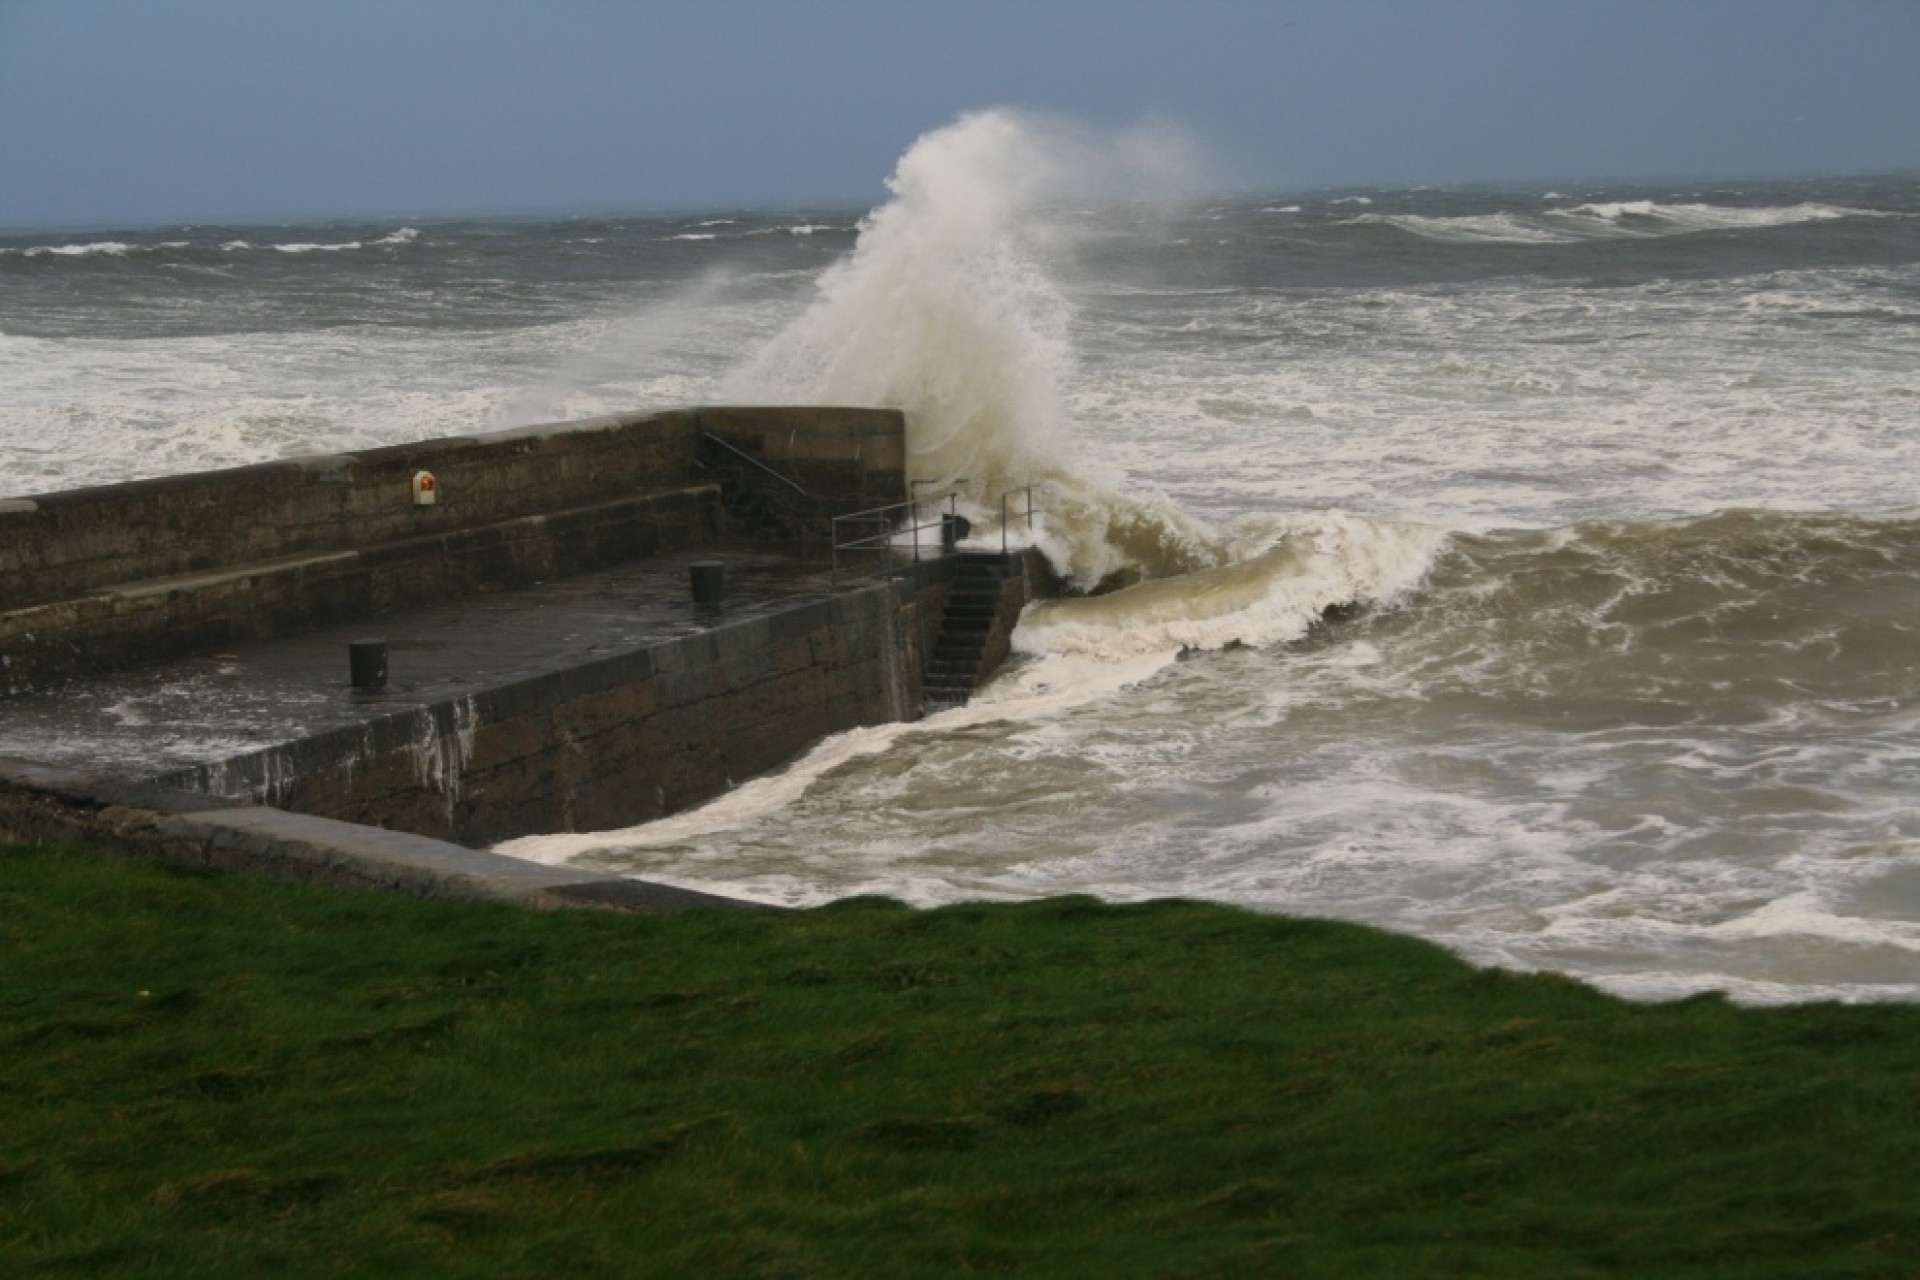 surfer william's photo of Enniscrone